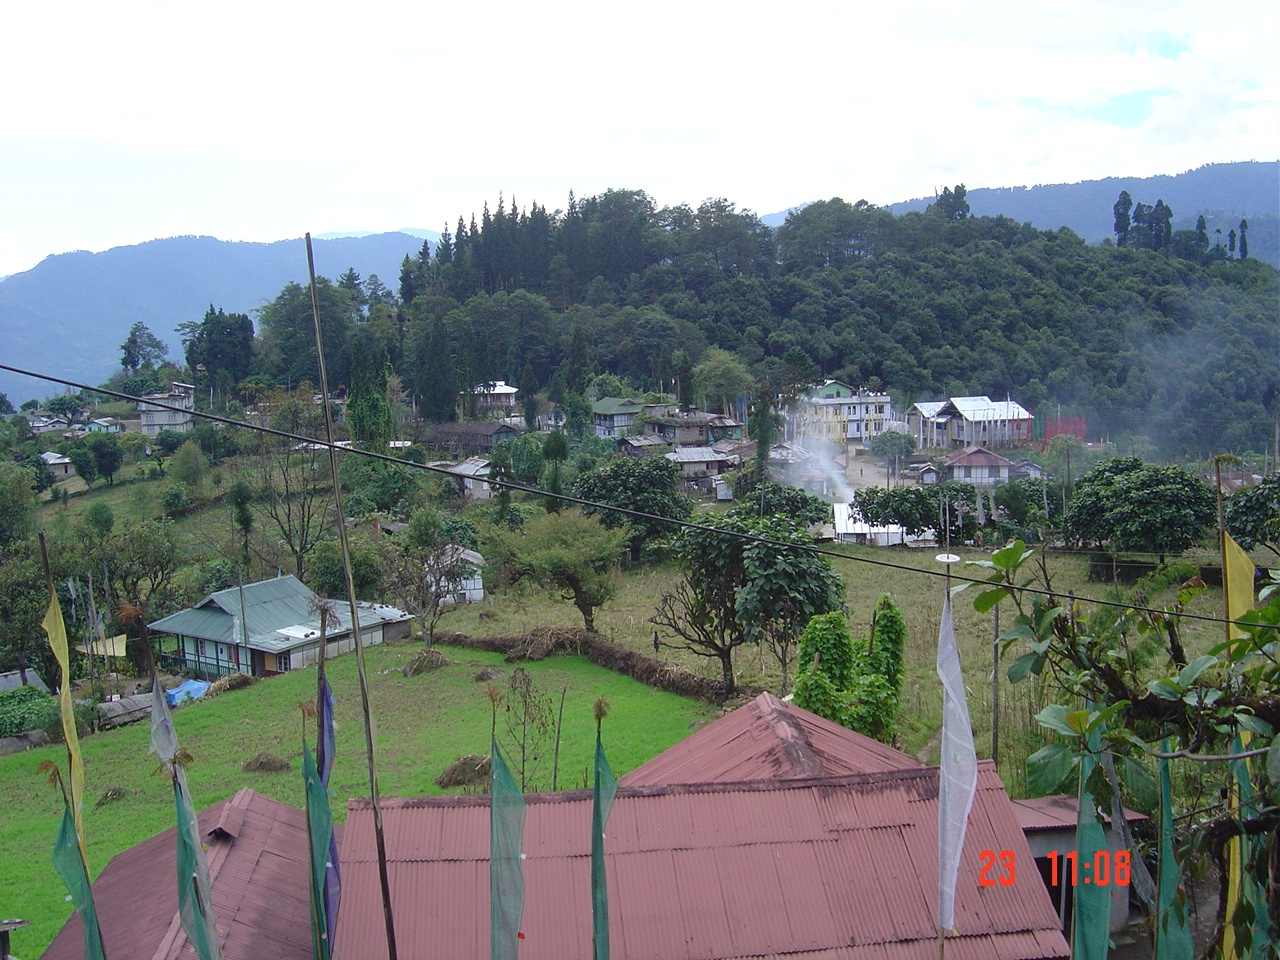 Yuksom, a Hill station town in Sikkim